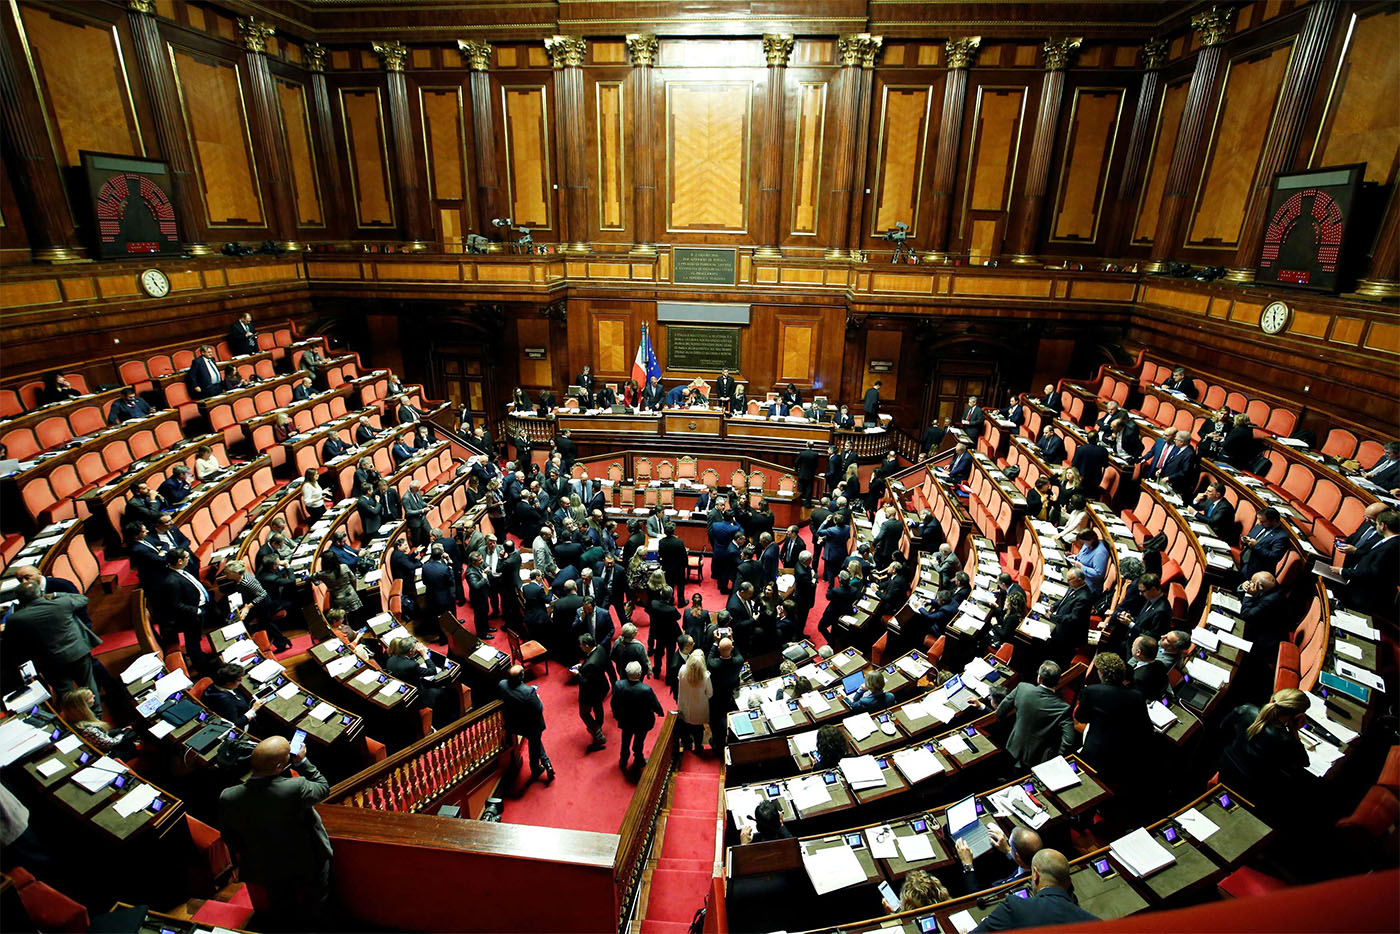 Italy's populist government won the confidence vote